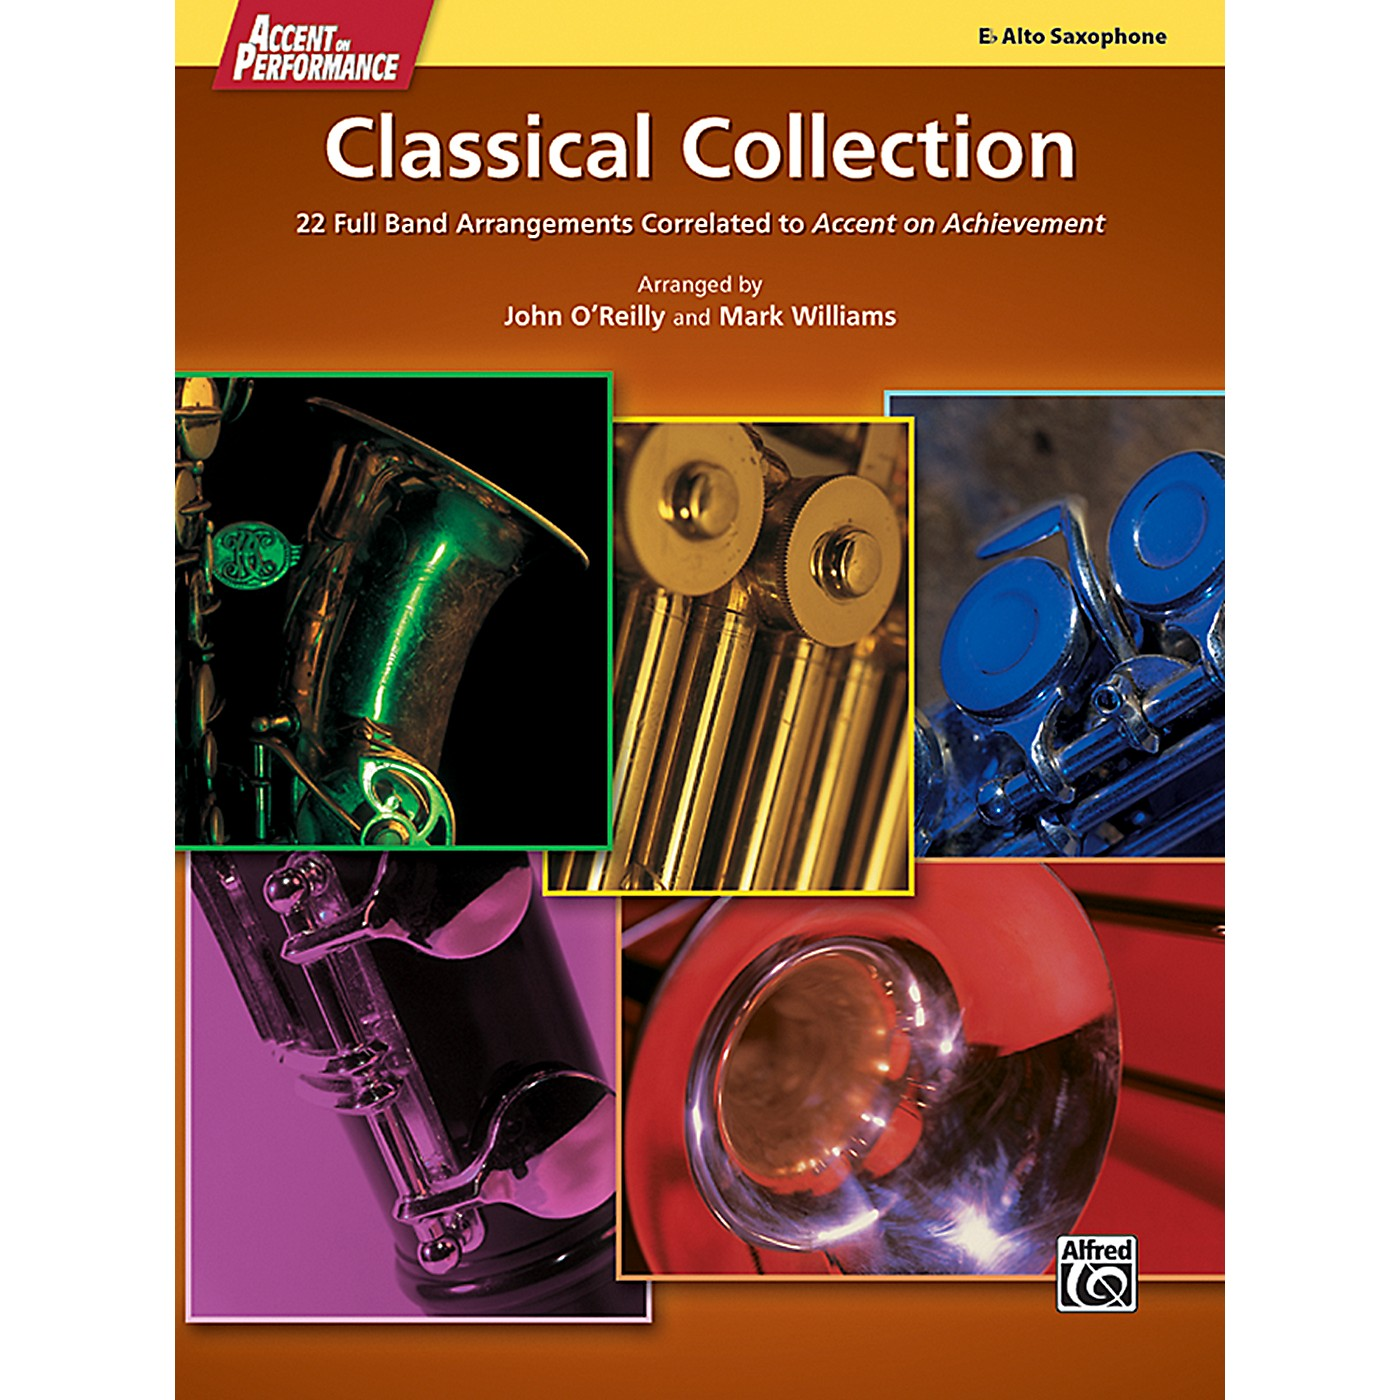 Alfred Accent on Performance Classical Collection Alto Saxophone Book thumbnail